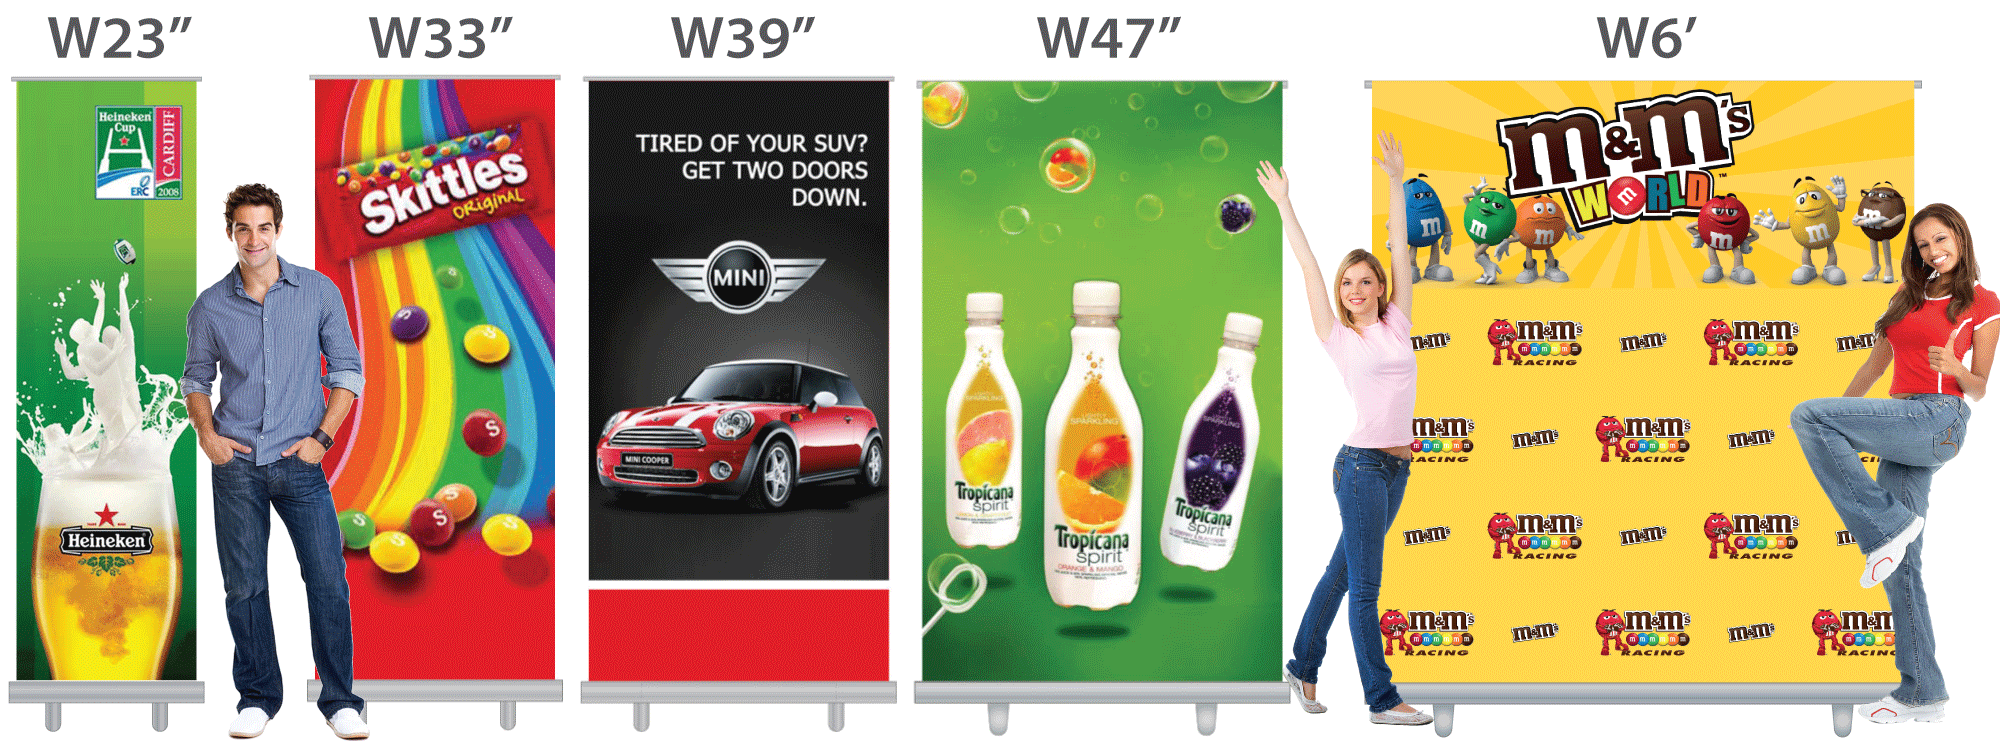 Retractable Banner Sizes